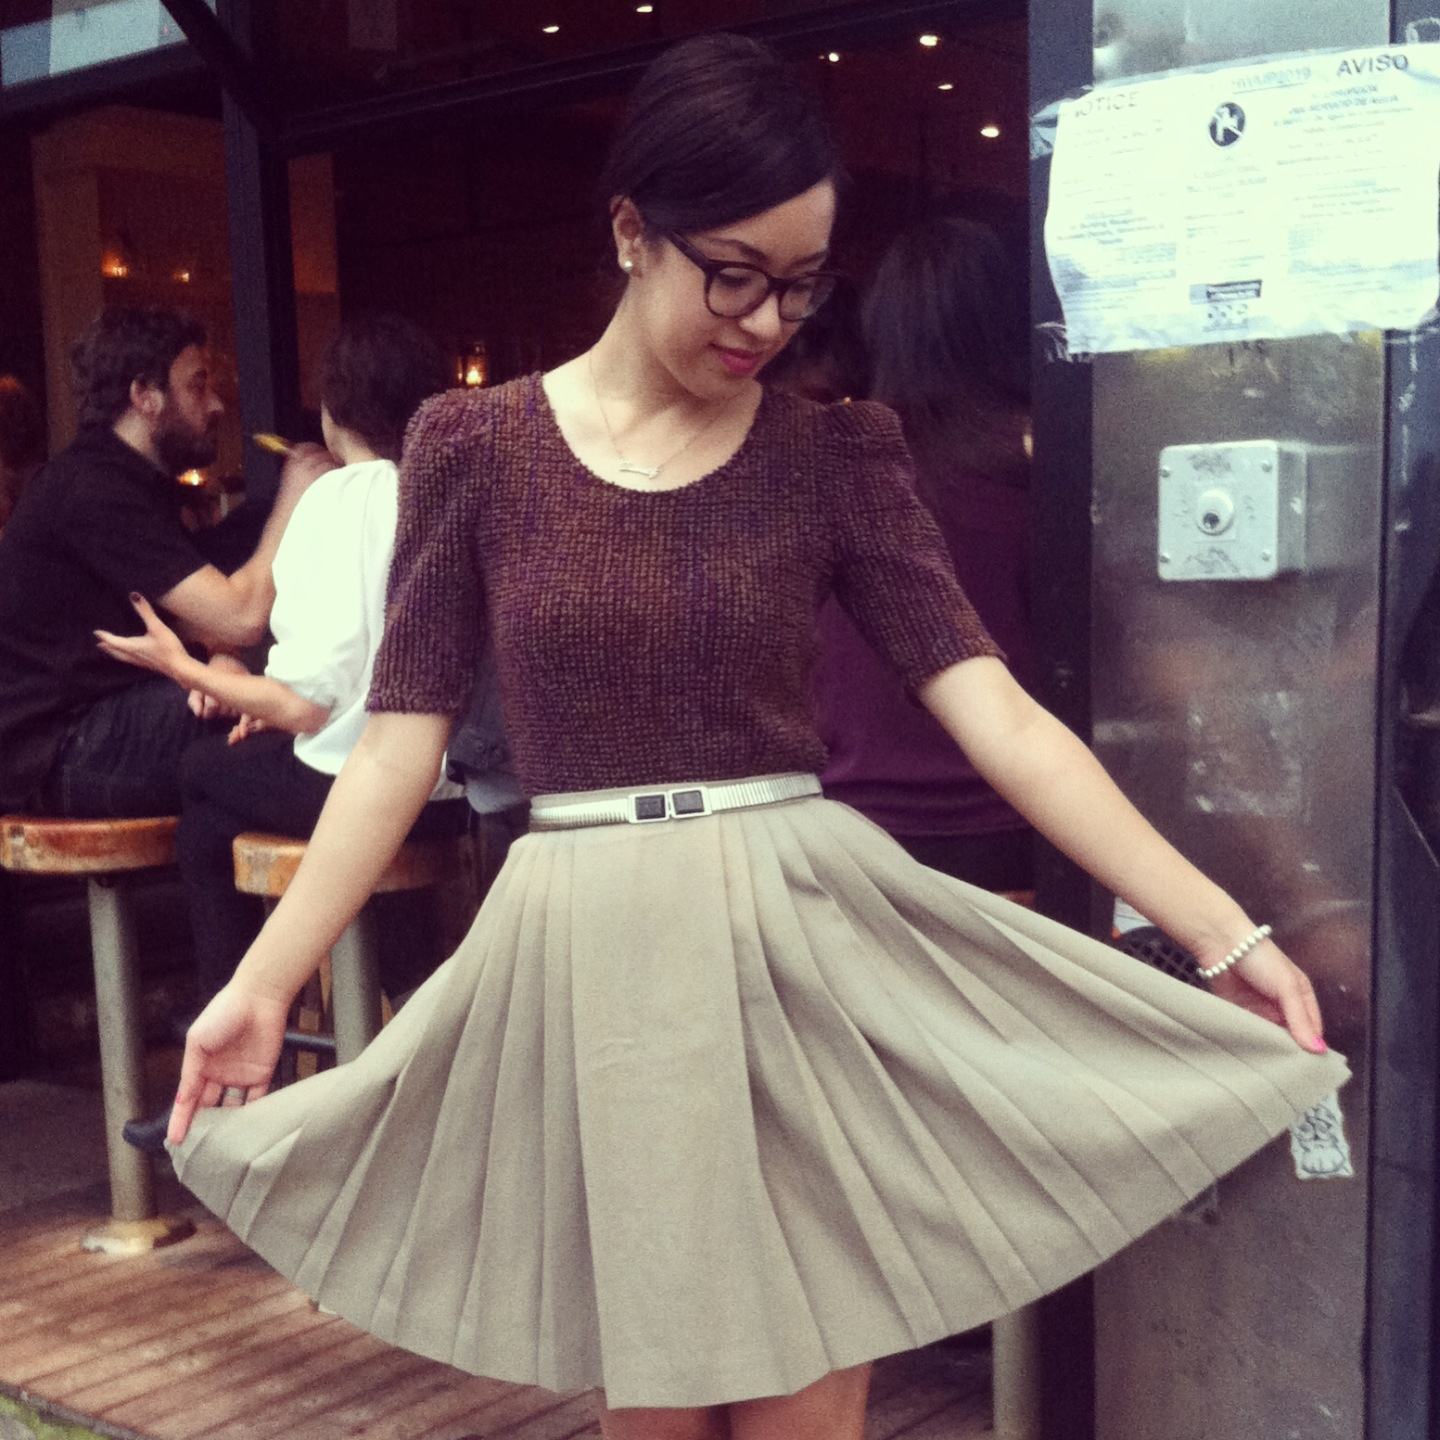 Showing off my pleats in front of Macondo